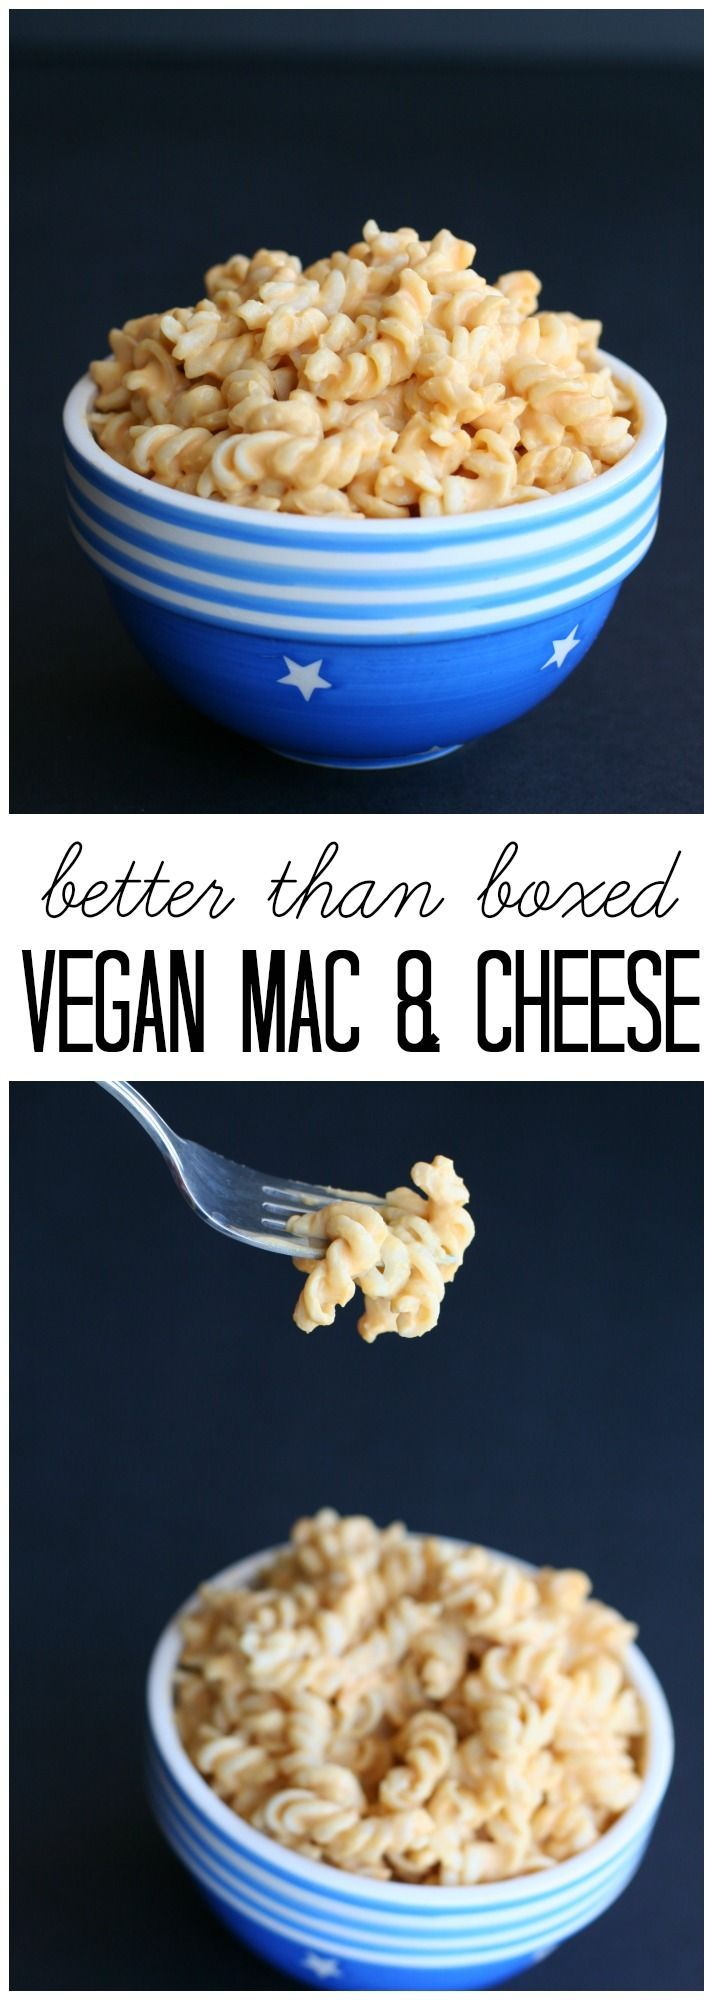 Better-than-Boxed Vegan Mac & Cheese from LauraFuentes.com